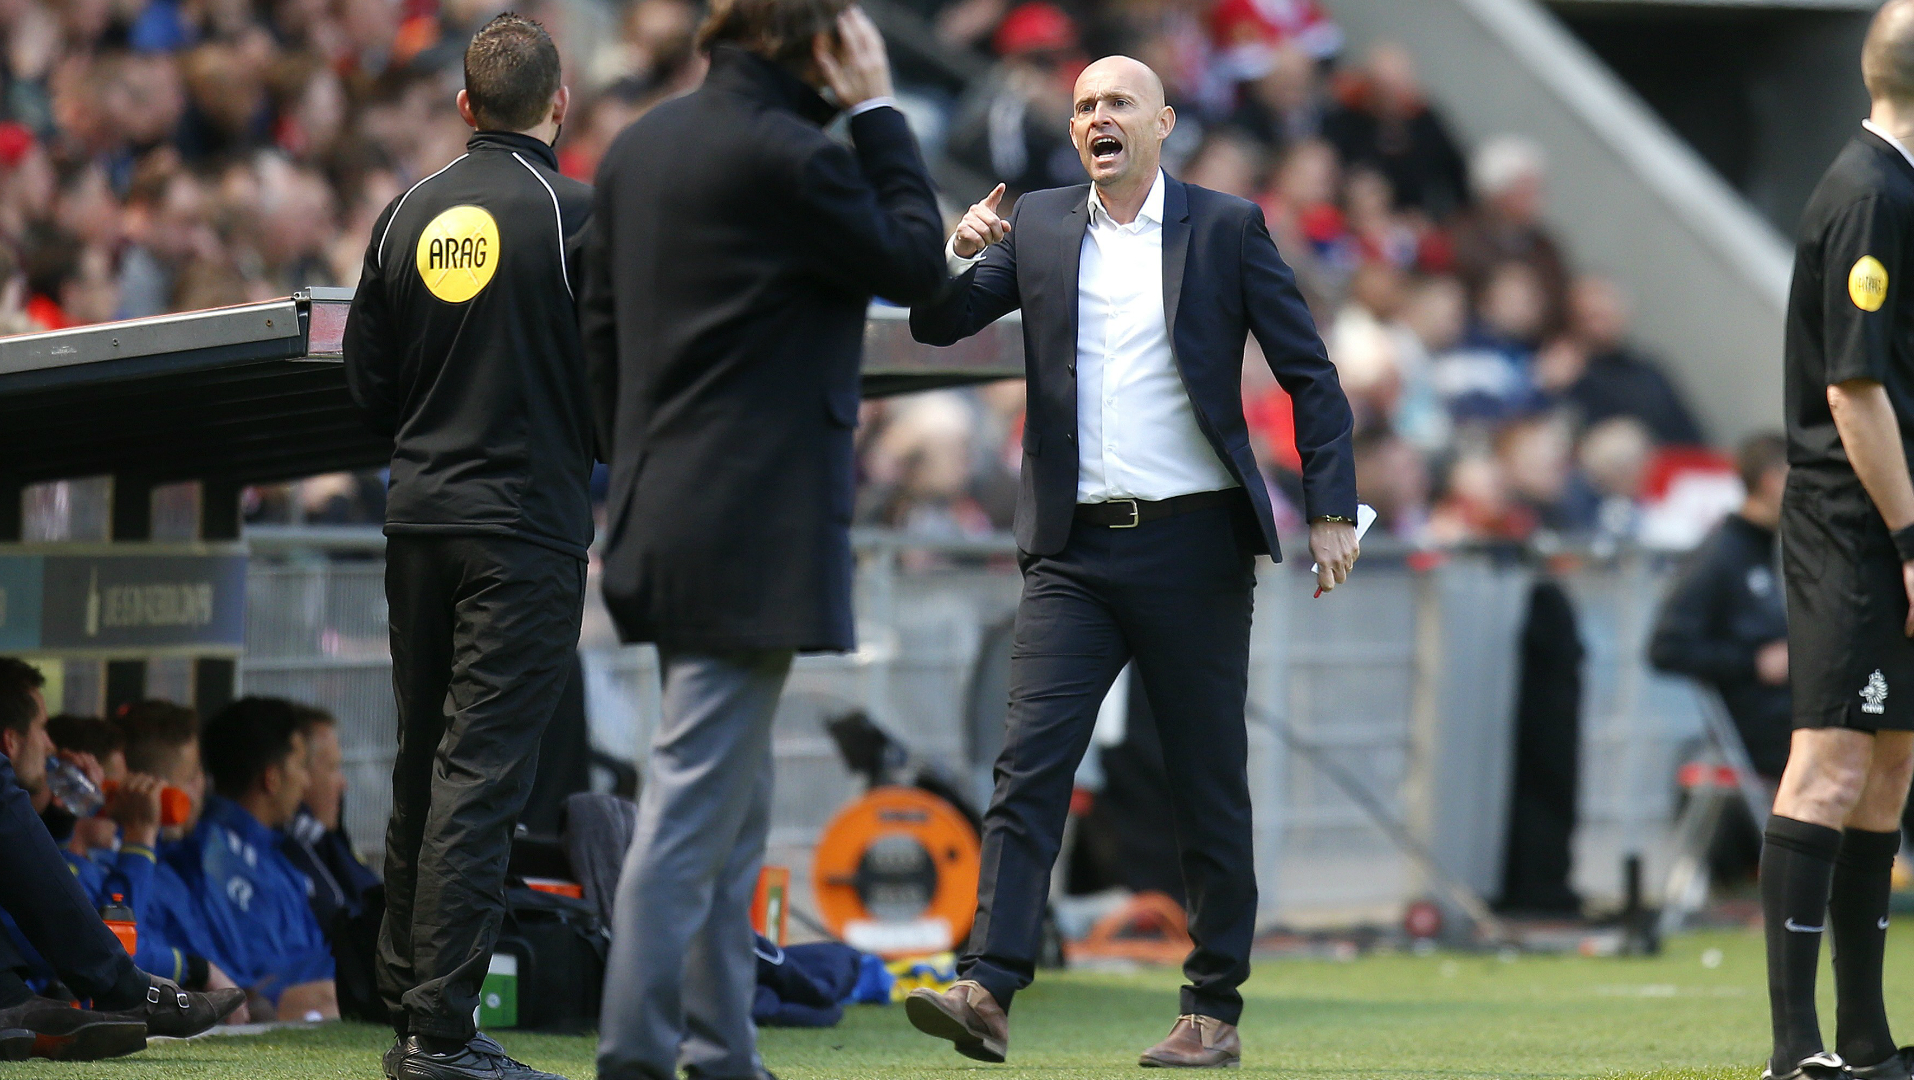 Keizer named new Ajax boss